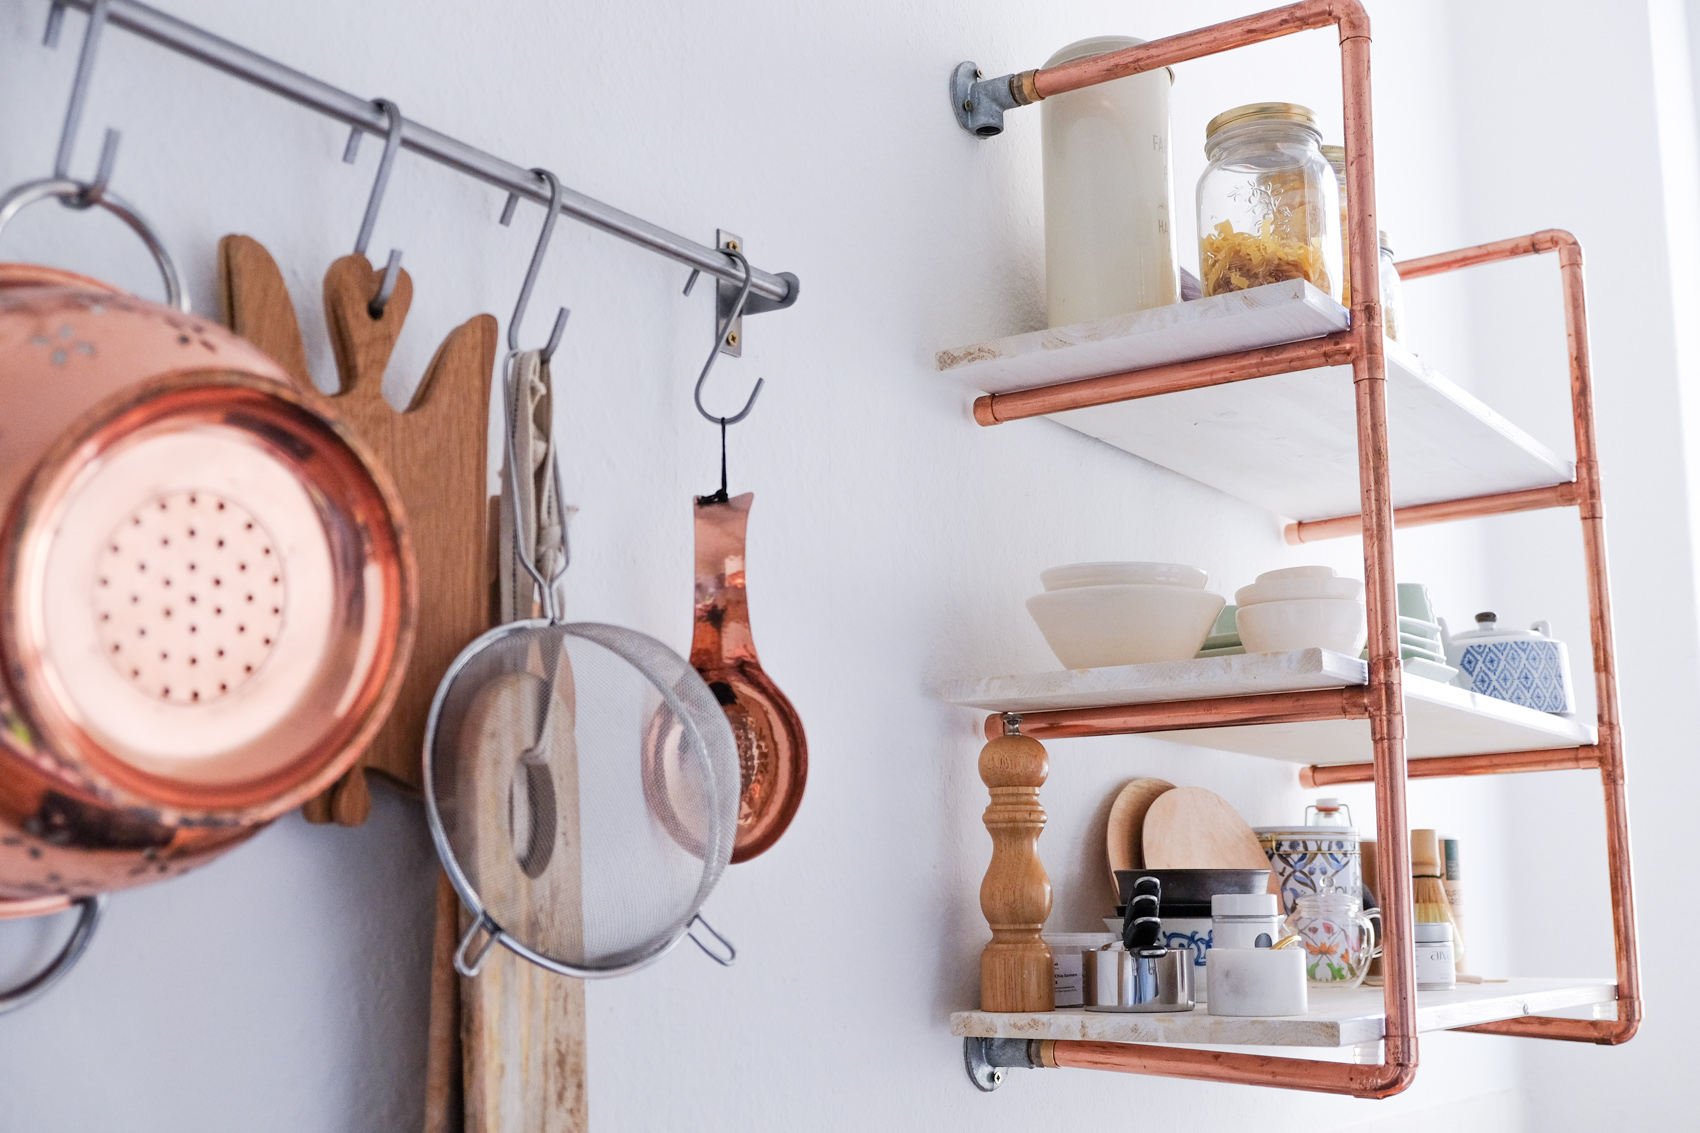 diy copper shelf (1 of 2)